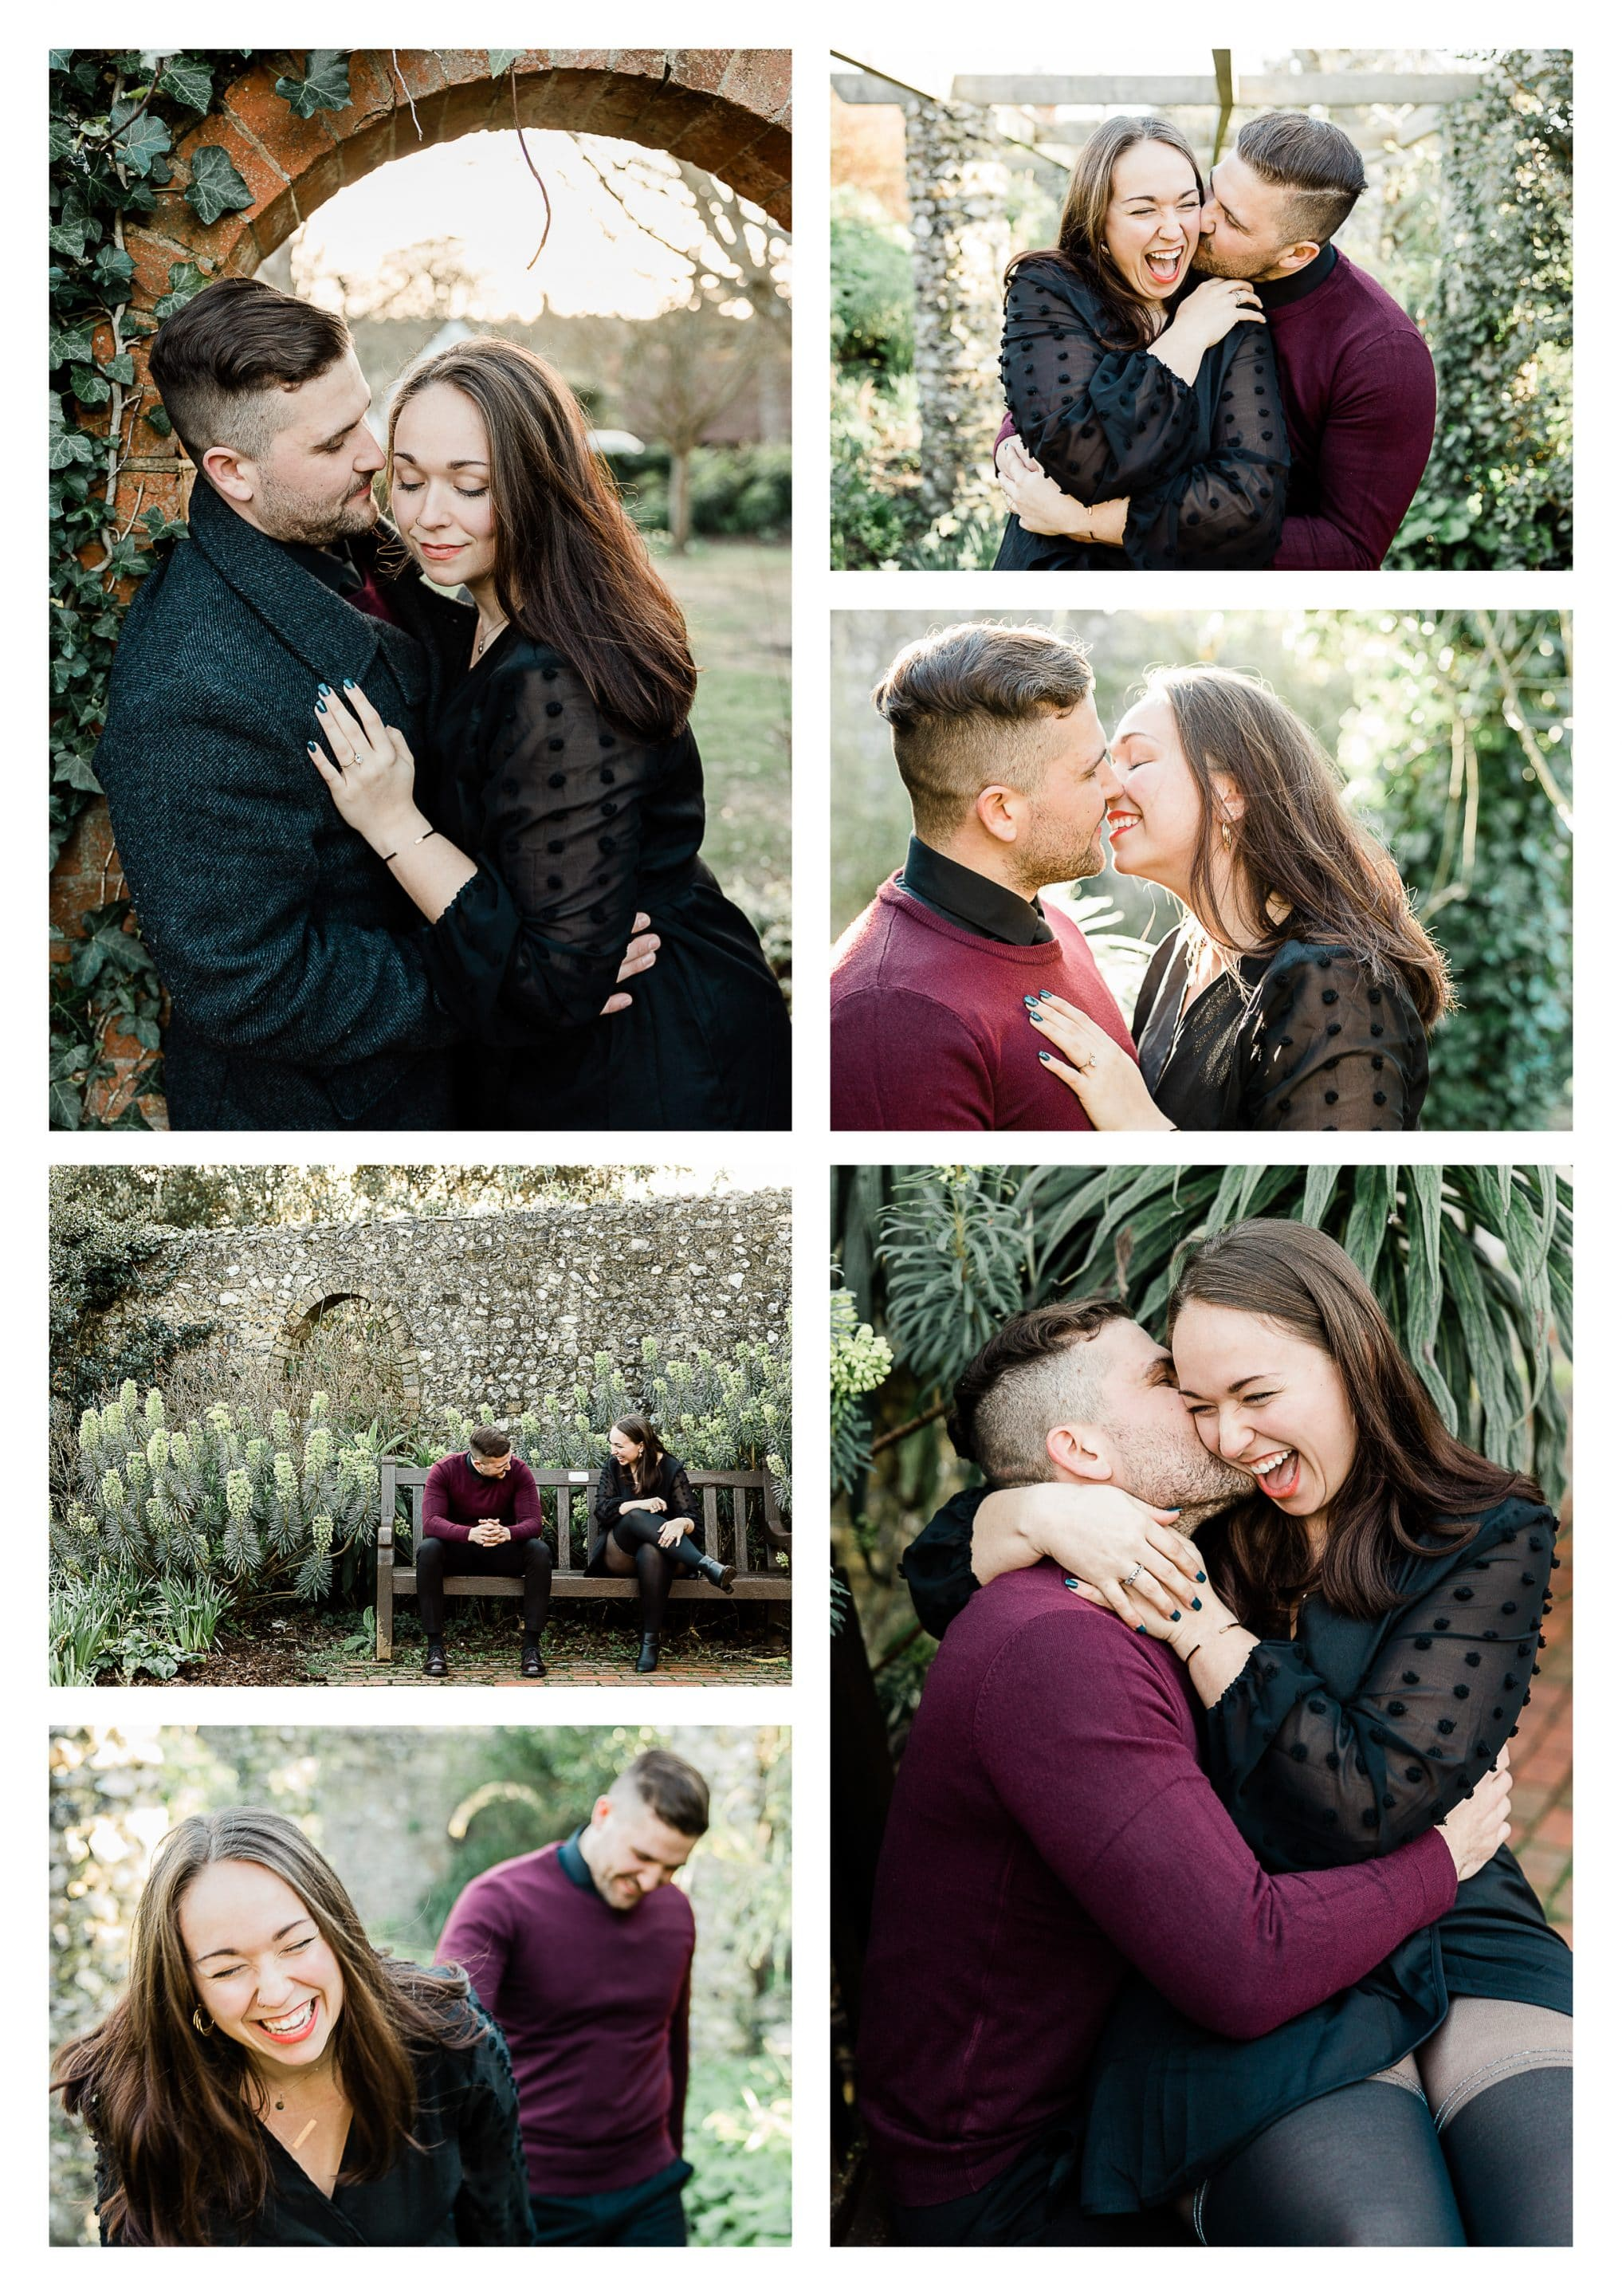 Kipling Gardens best places to propose in Brighton and surrounding areas